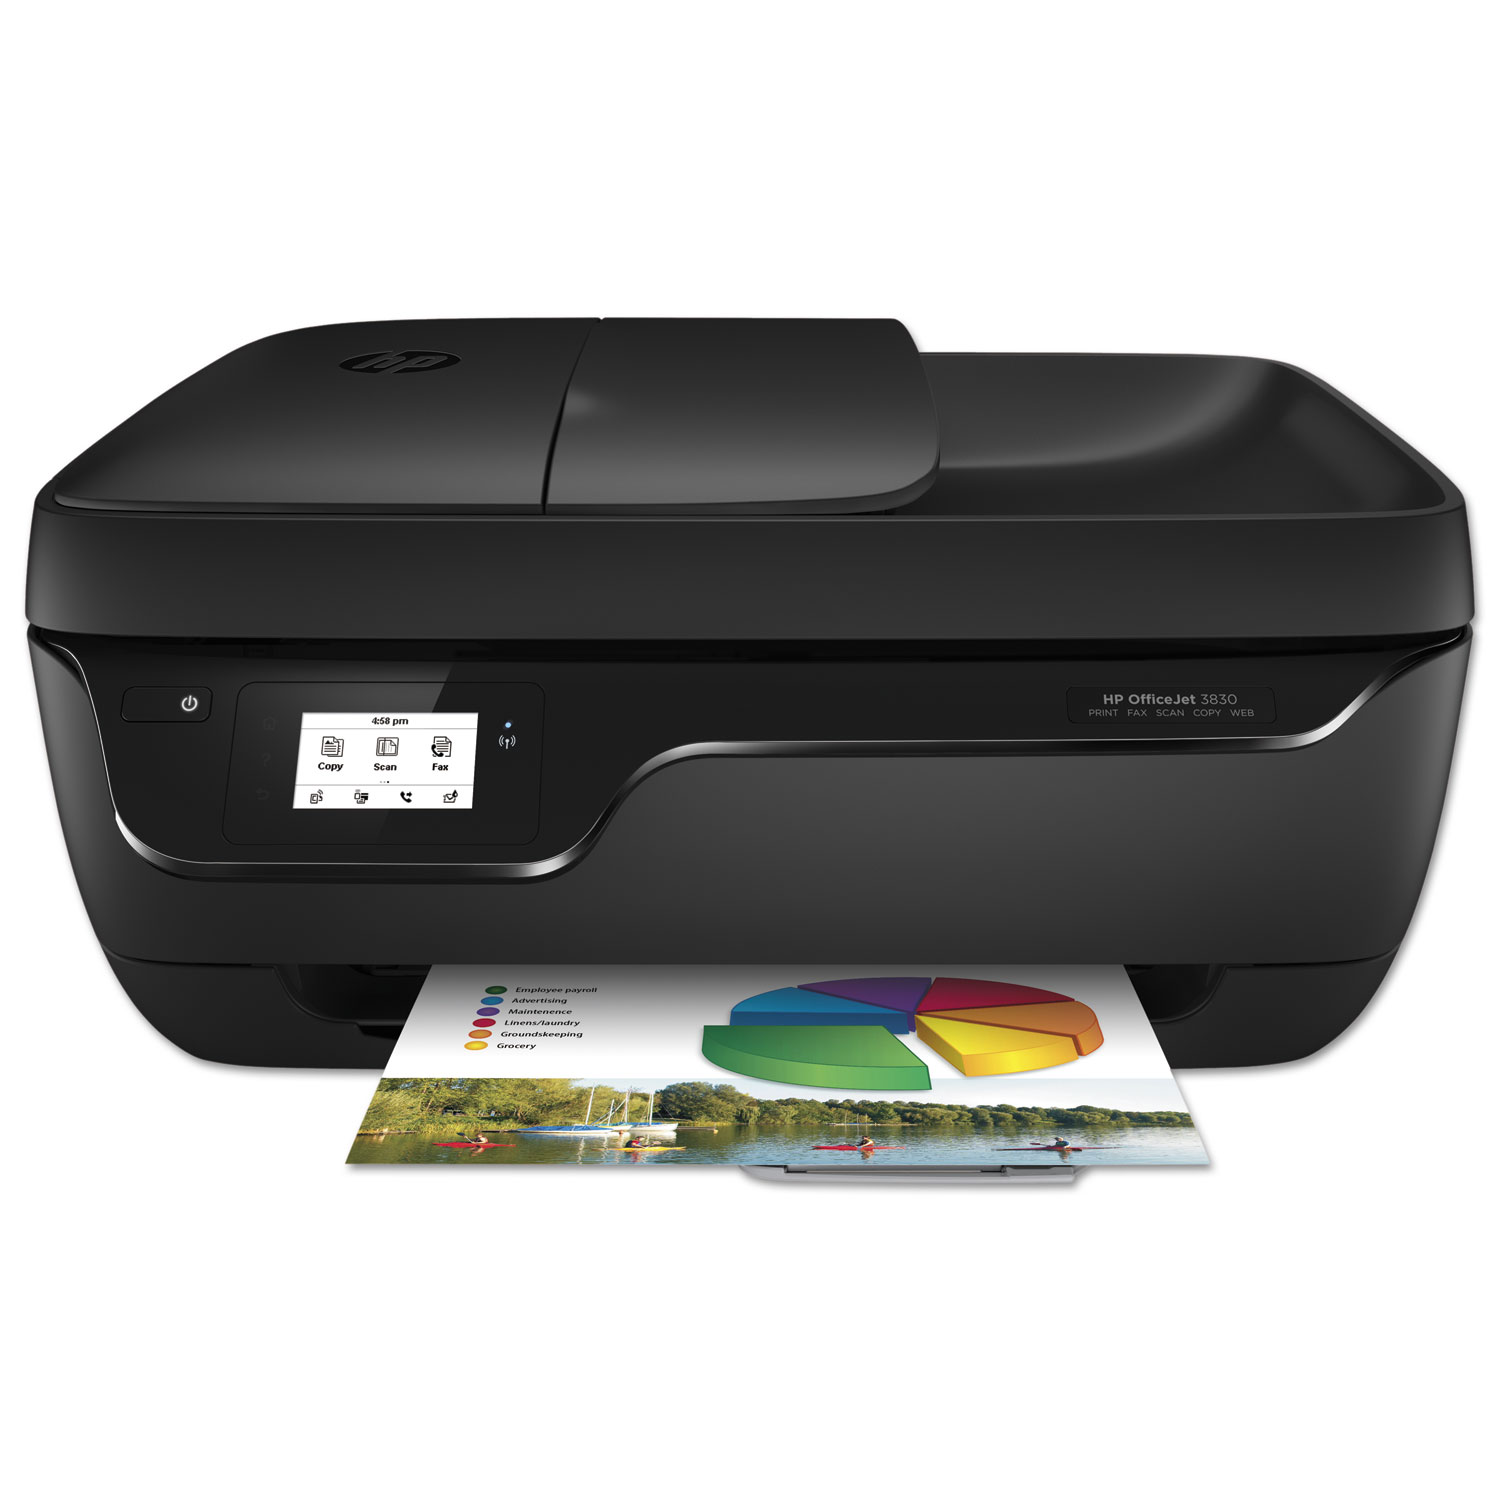 HP Officejet 3830 All-in-One Printer, Copy/Fax/Print/Scan